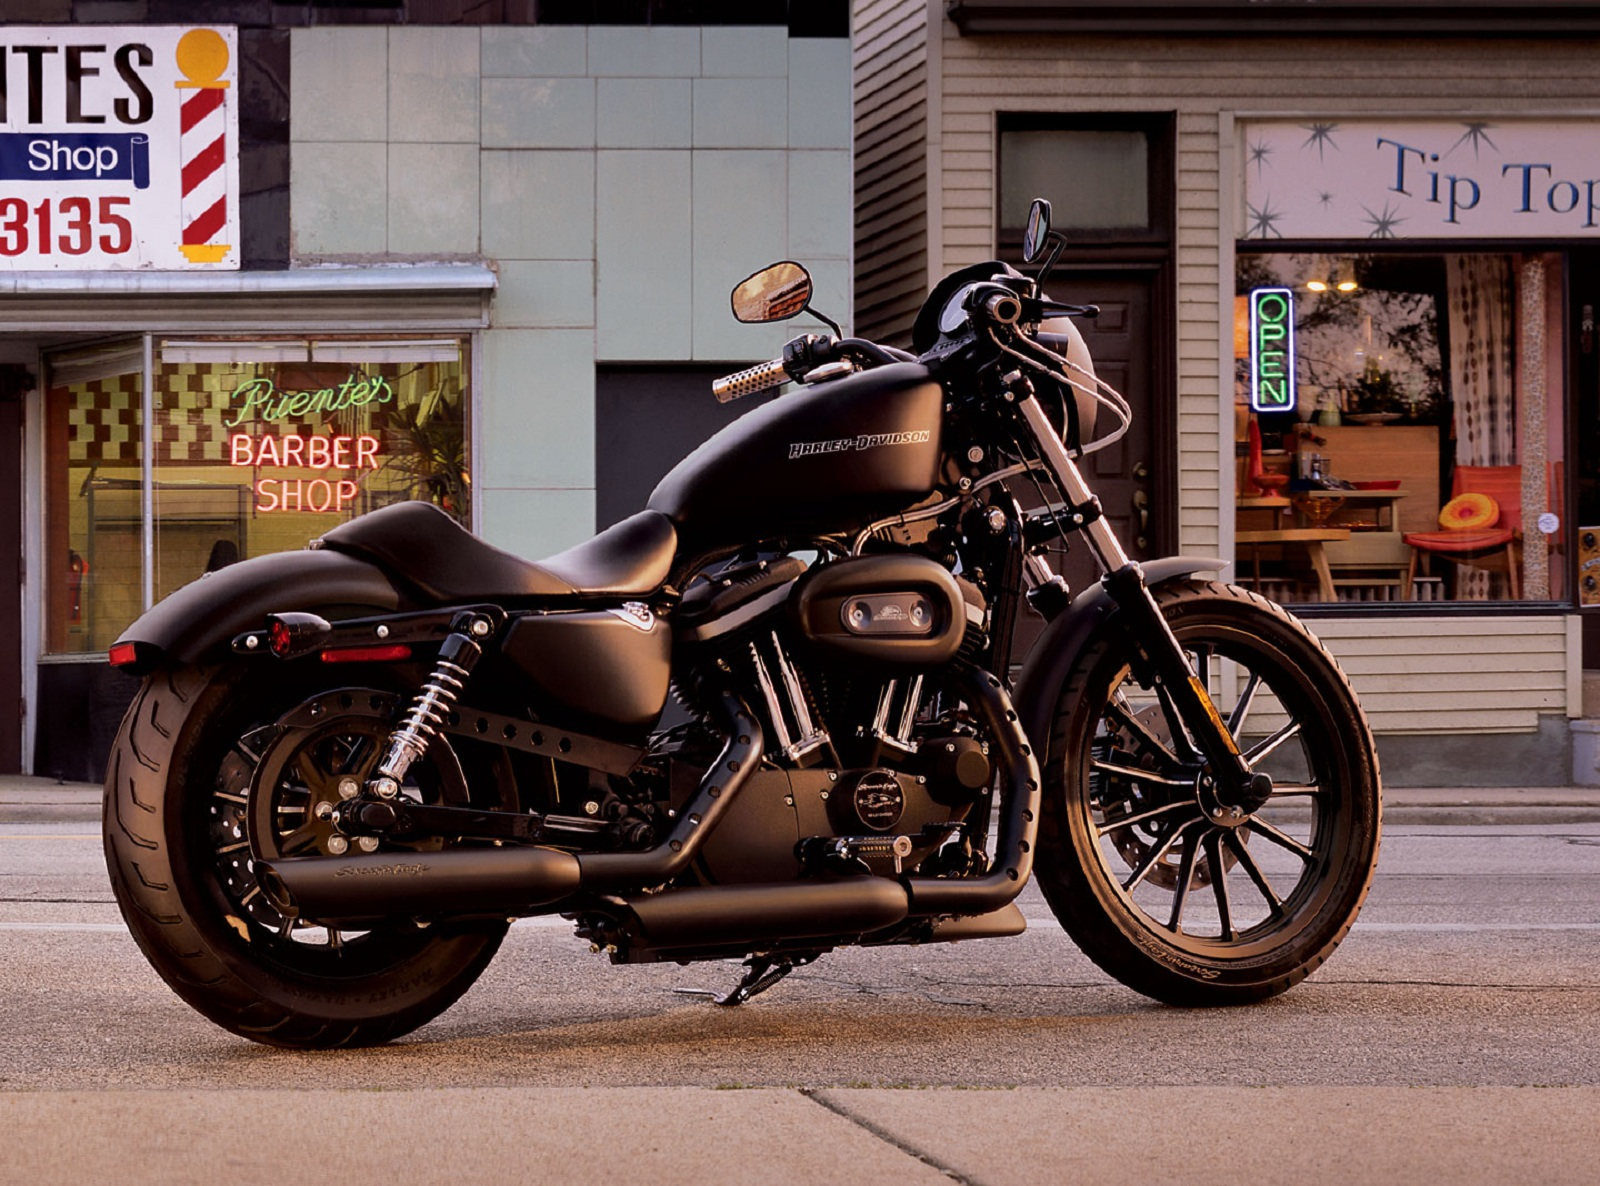 2012 Harley-Davidson Sportster XL883N Iron 883 Review - Top Speed